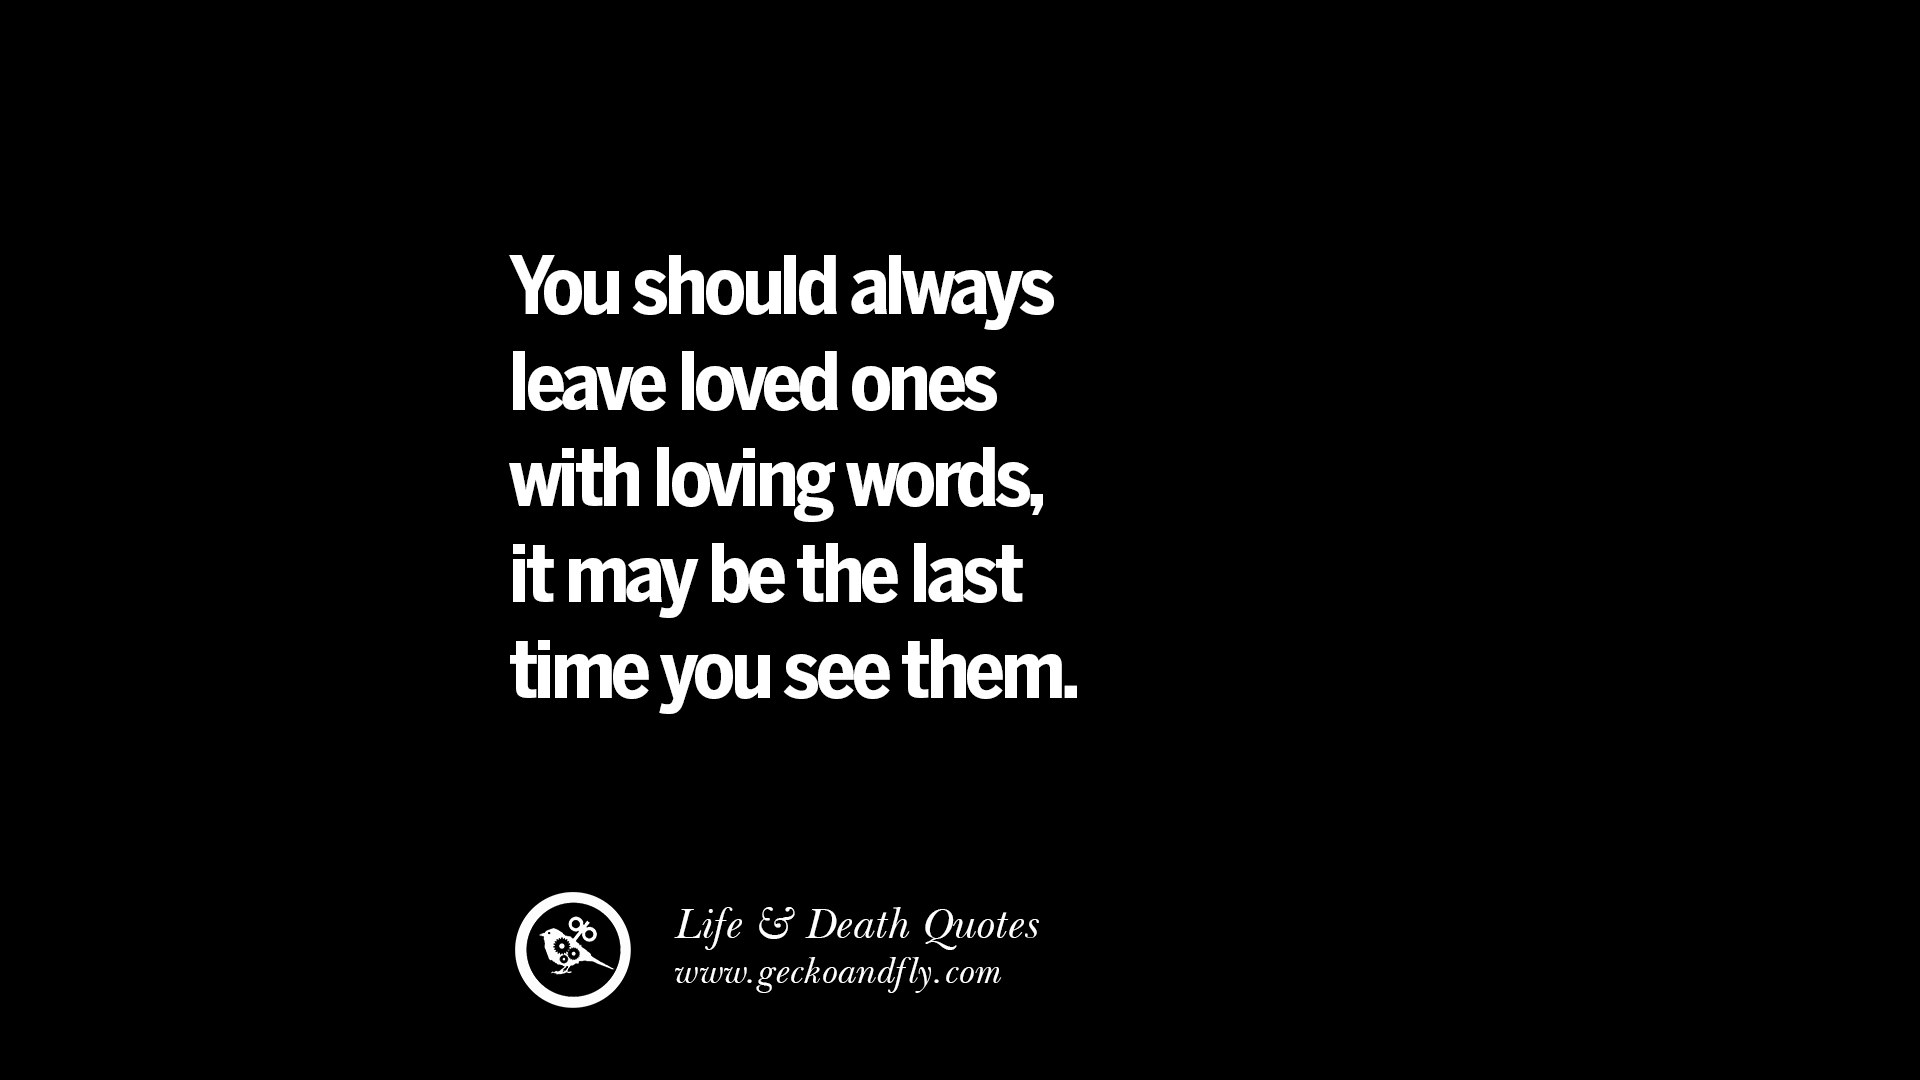 Death Quotes For Loved Ones 20 Inspirational Quotes On Life Death And Losing Someone